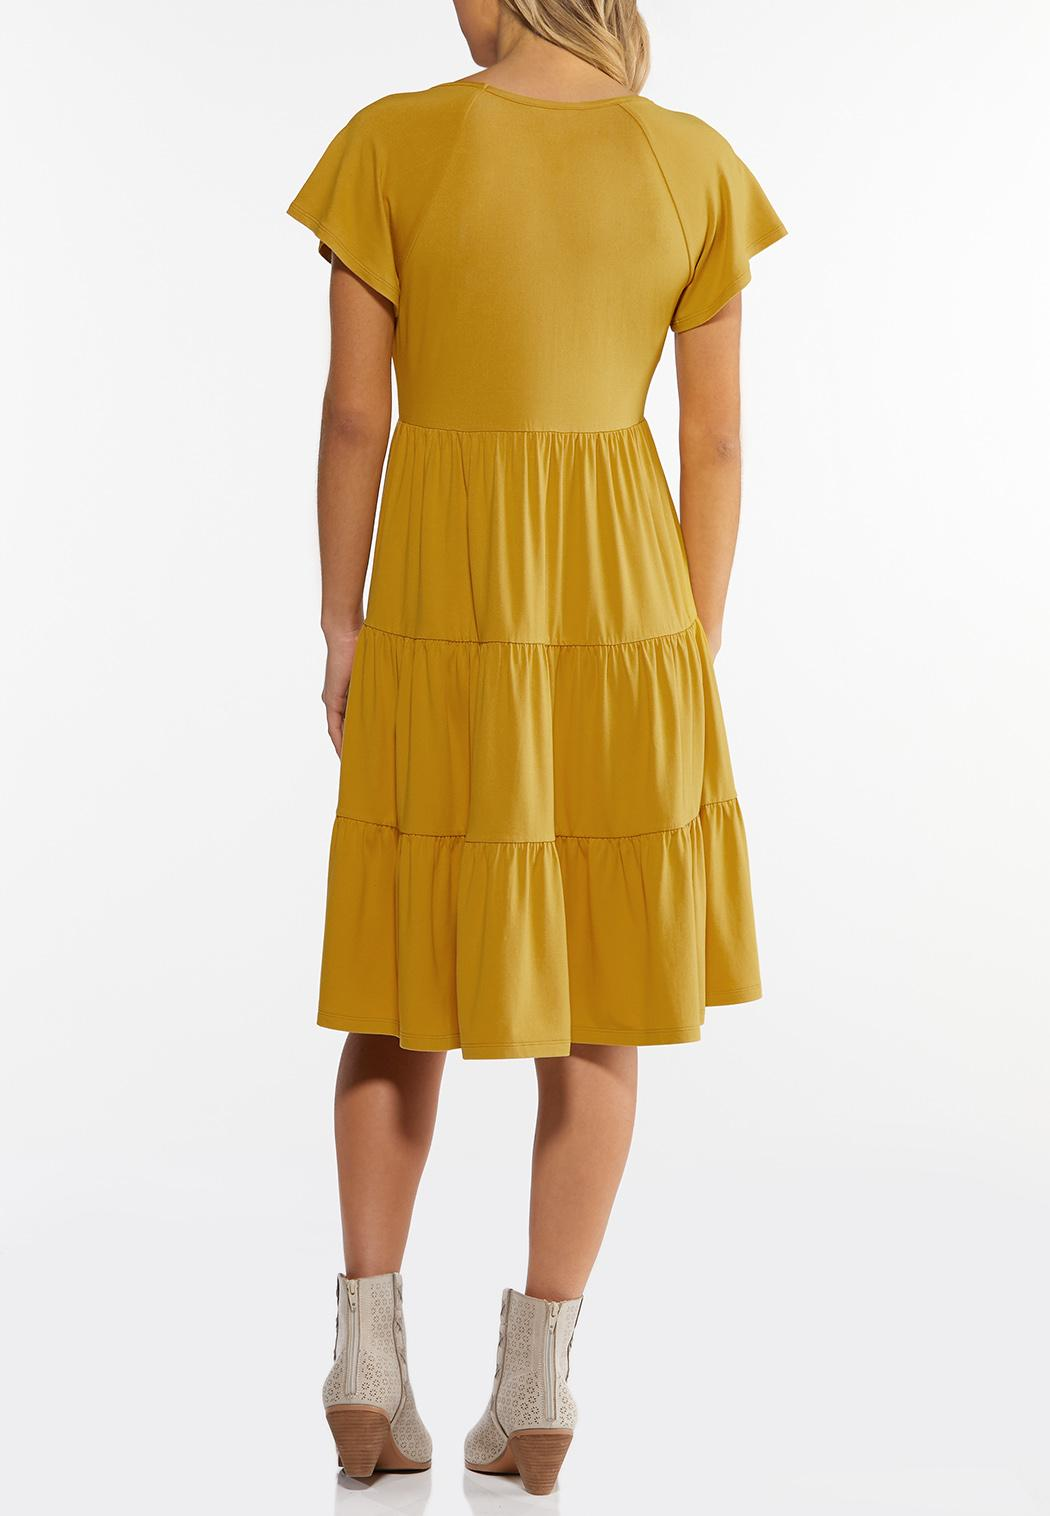 Plus Size Tiers And Sunshine Dress (Item #44295126)